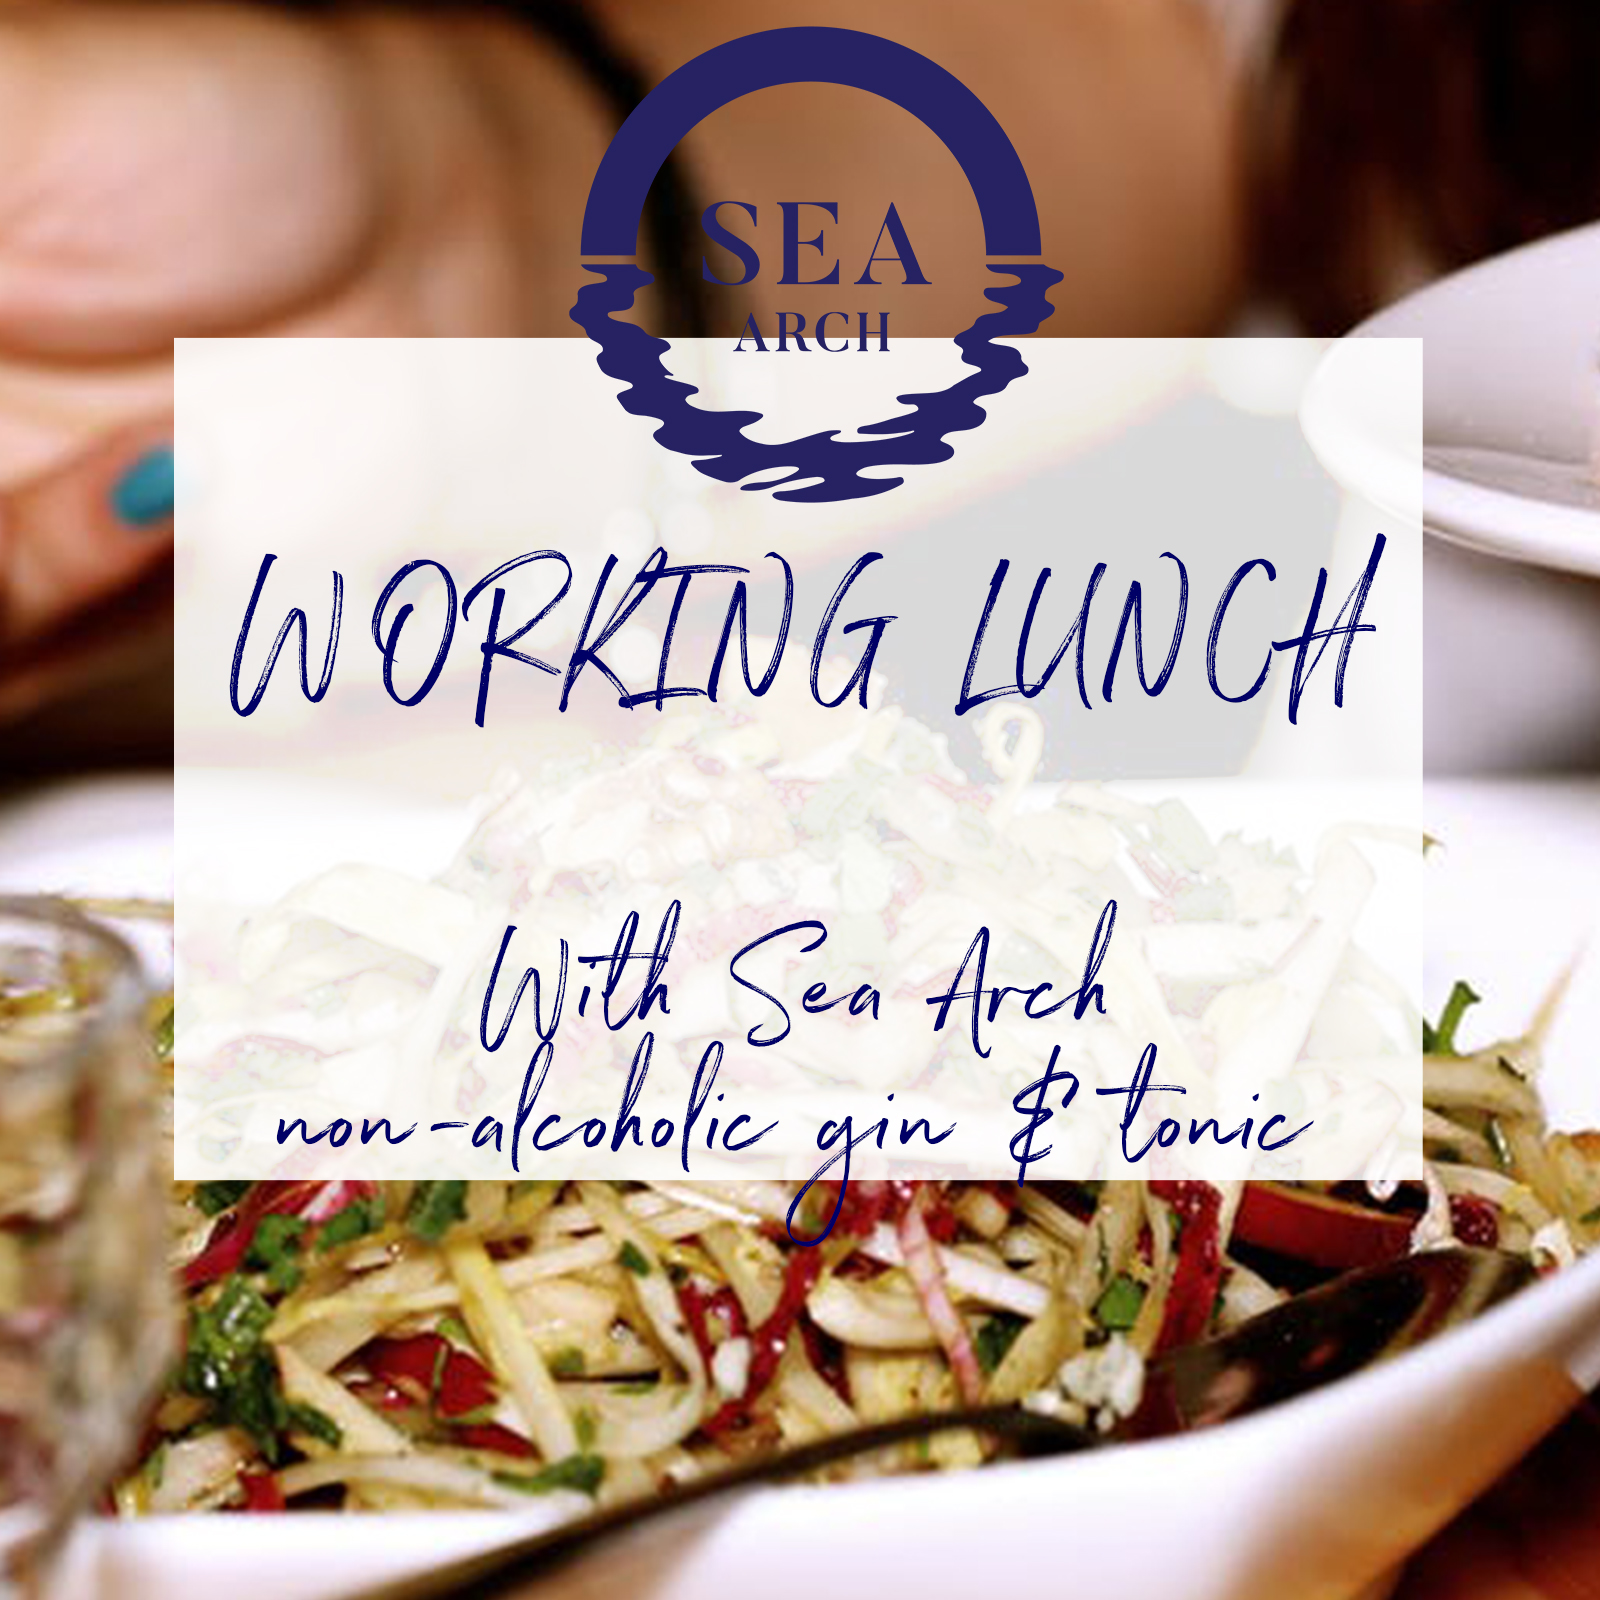 Working+lunch+with+non alcoholic+drinks?format=original